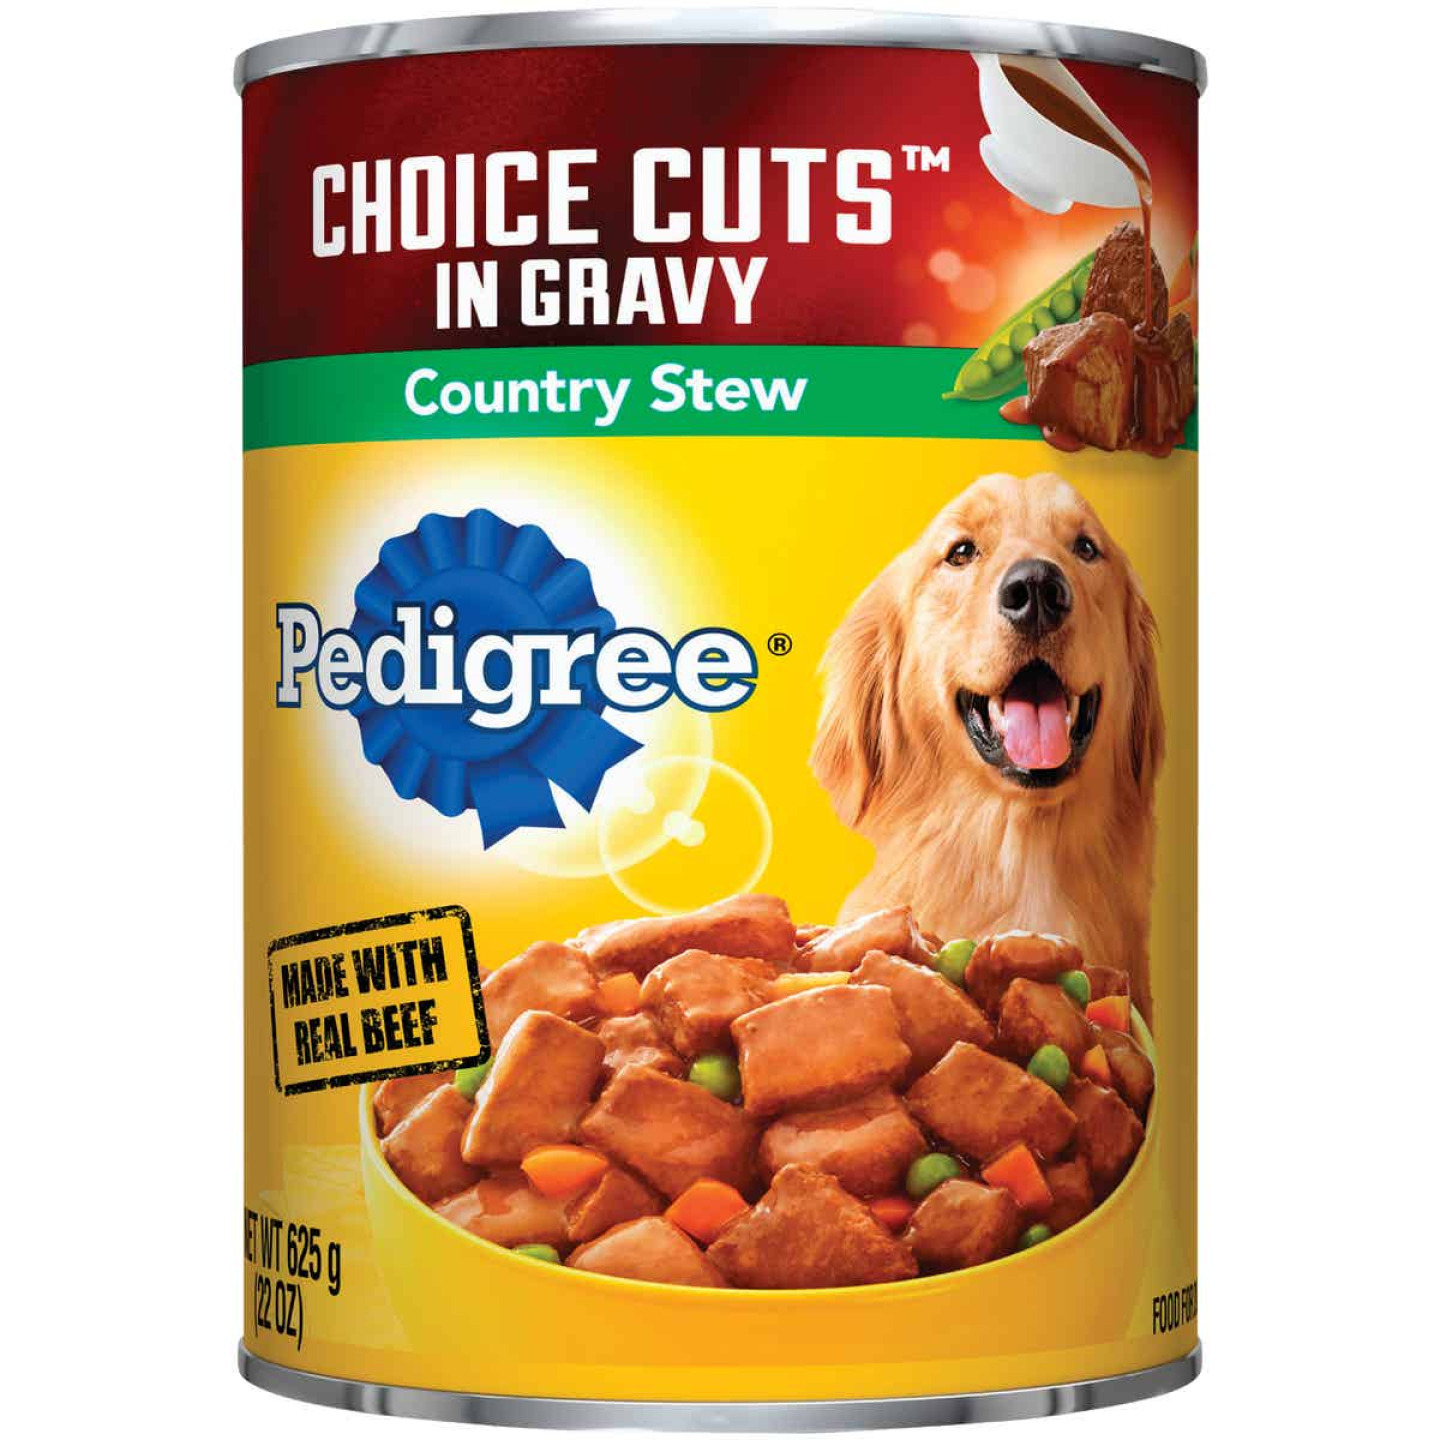 Pedigree Choice Cuts Country Stew Wet Dog Food, 22 Oz. Image 1